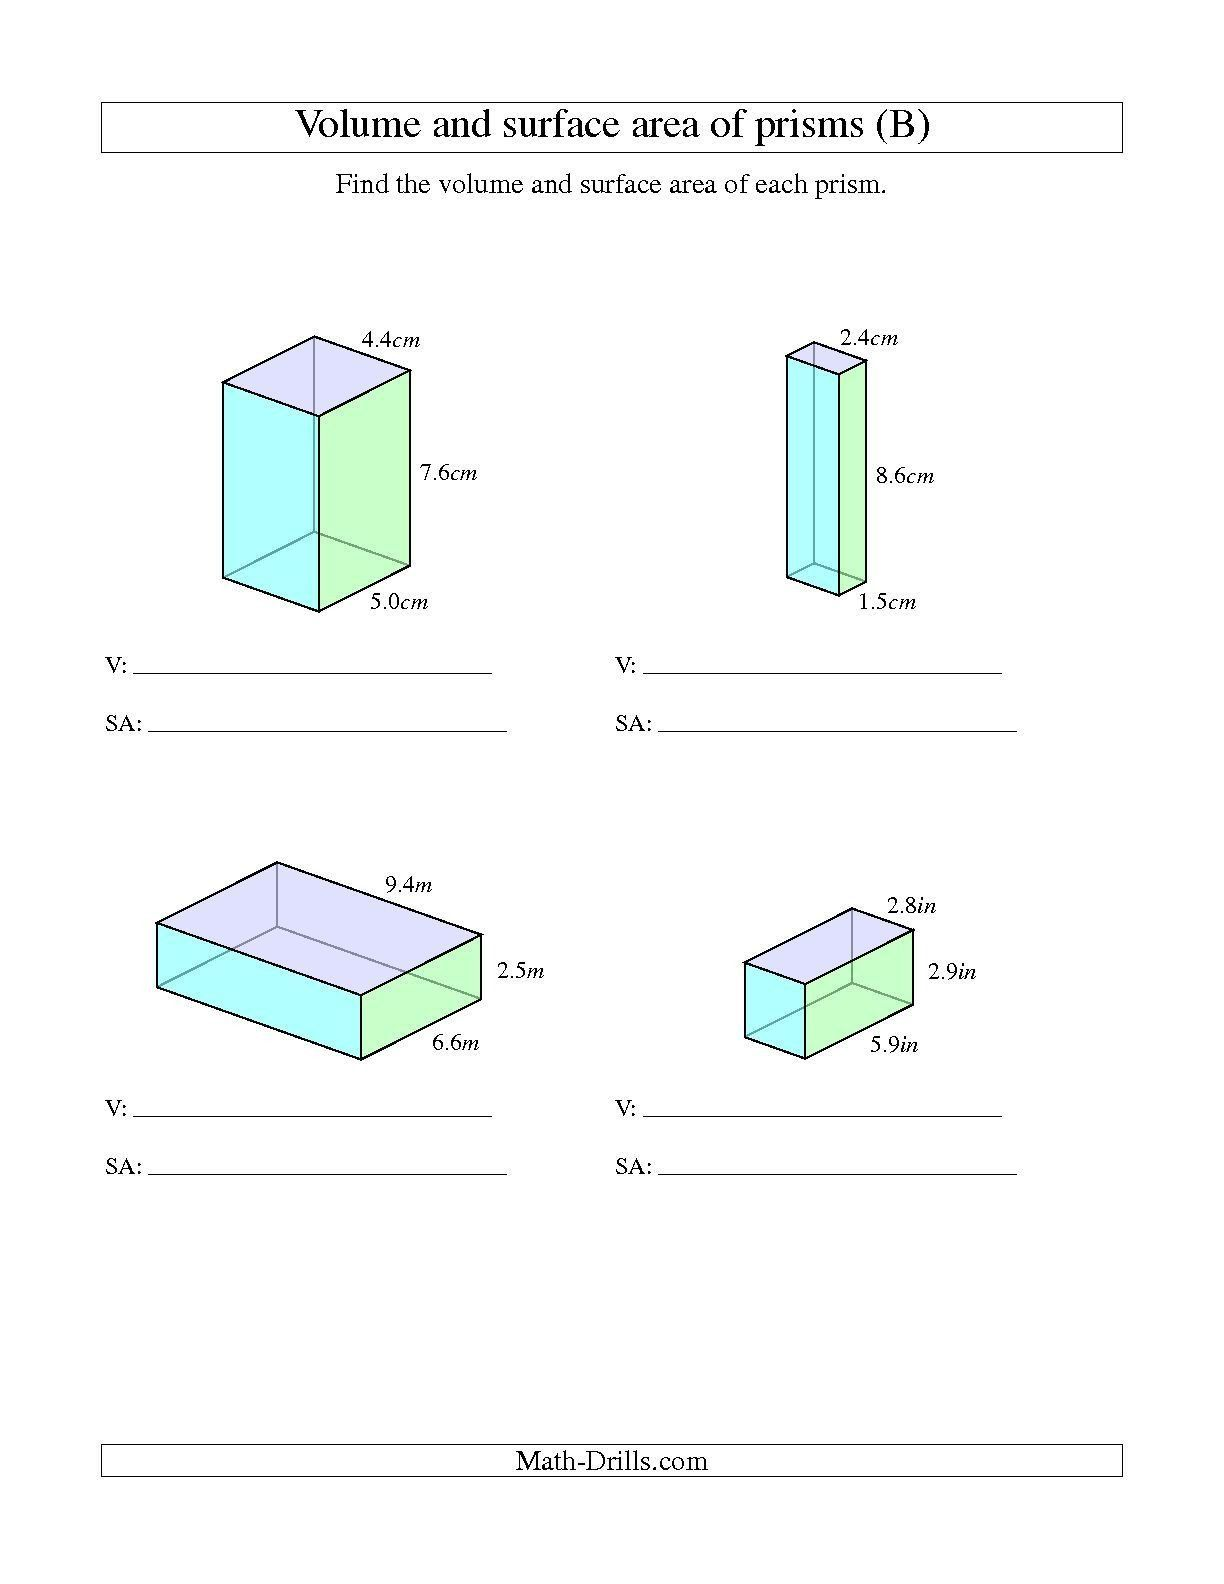 Volume Of T Zoidal Prism Worksheet The Volume And